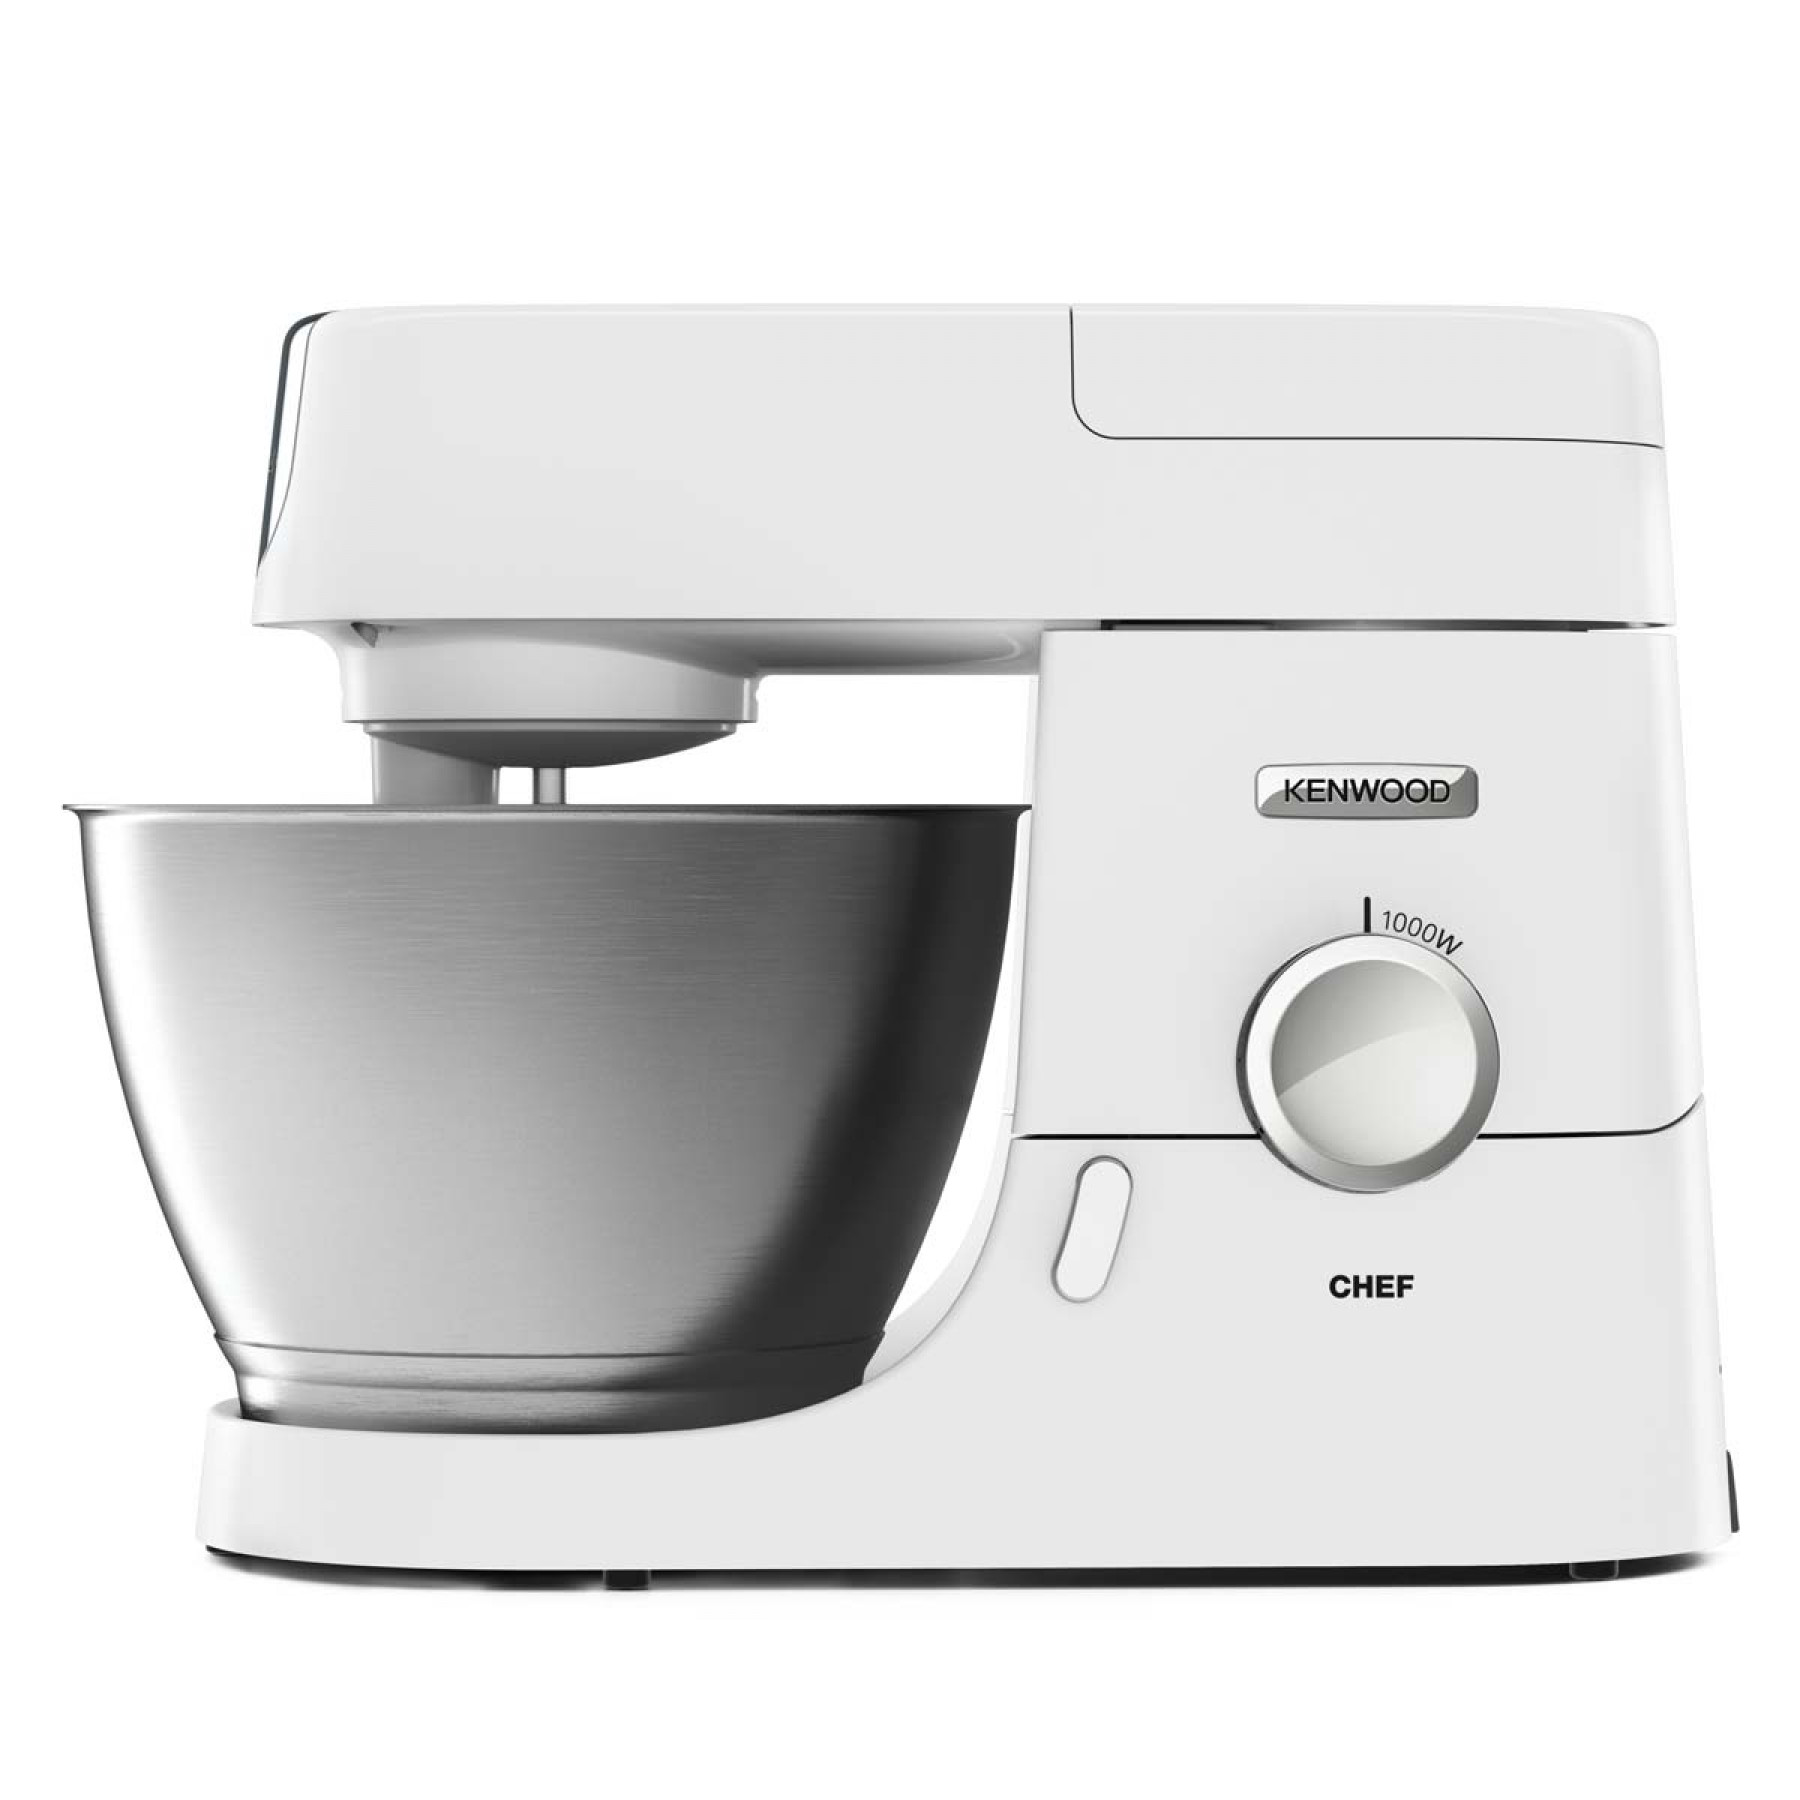 Kenwood chef stand mixer with 4 6l bowl and accessories for Kenwood cooking chef accessoire